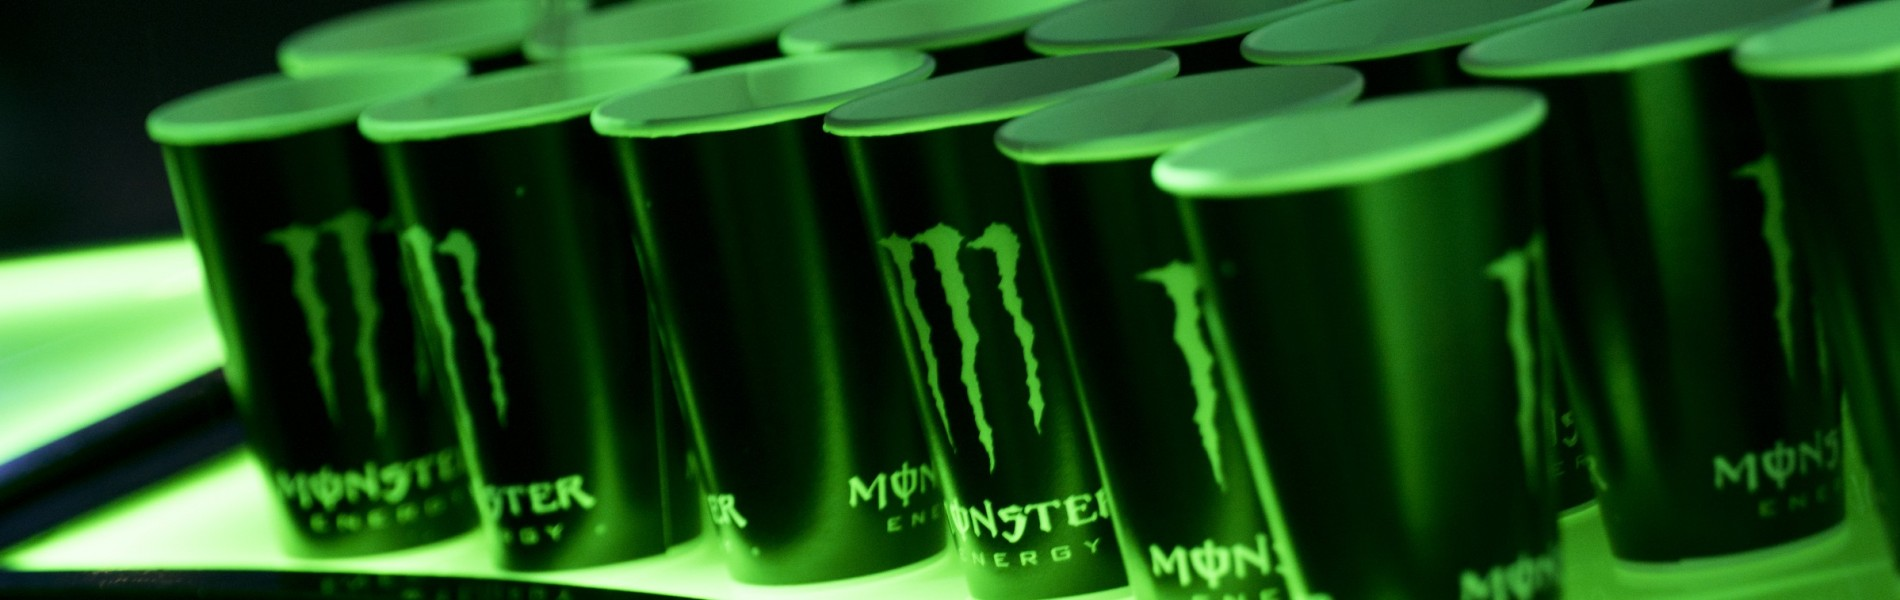 Monster Energy attending Electronic Game Show with tournaments inside the booth